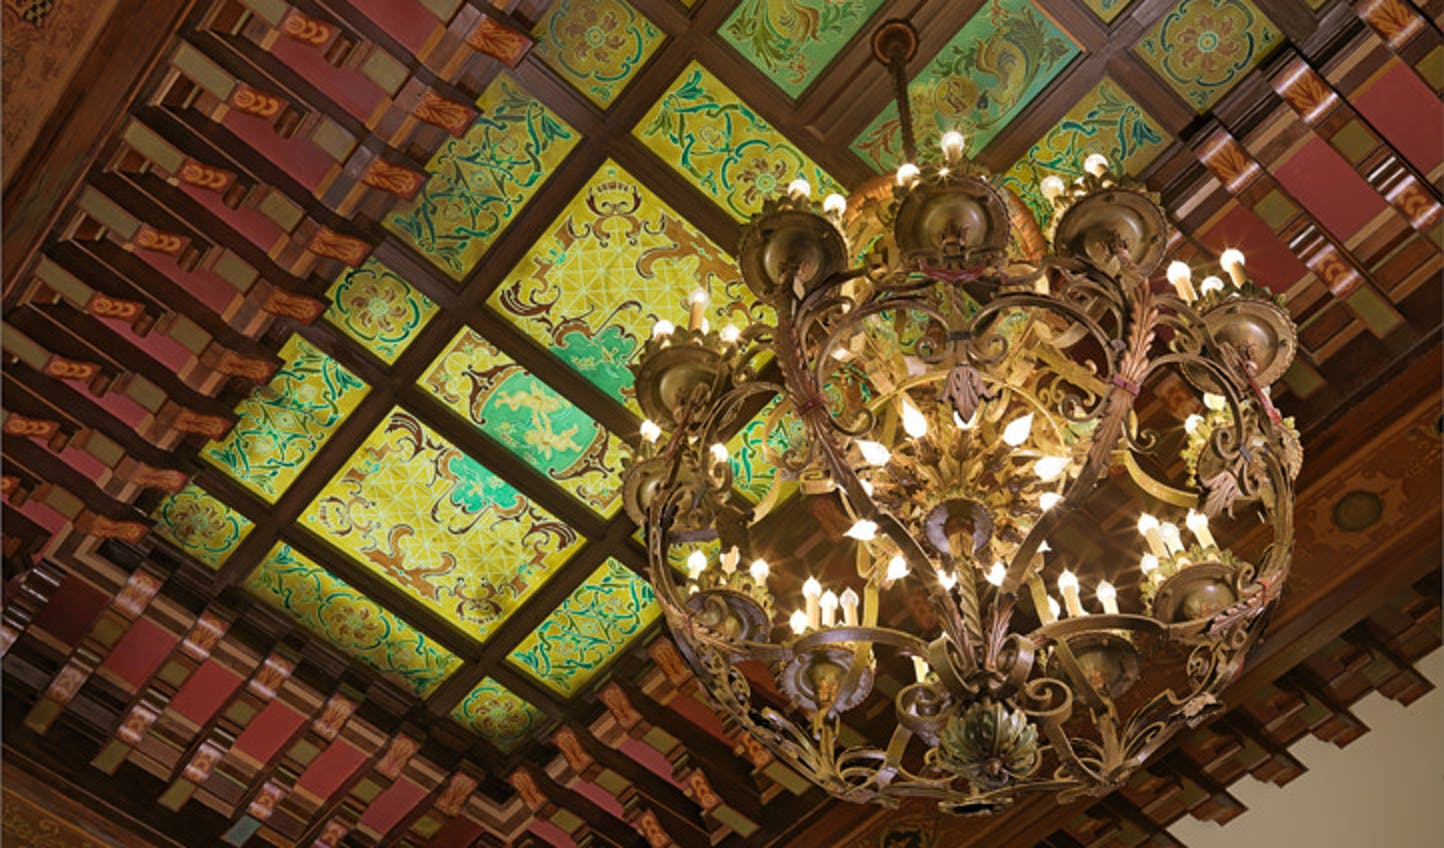 The Peabody Hotel's chandelier hands beautifully